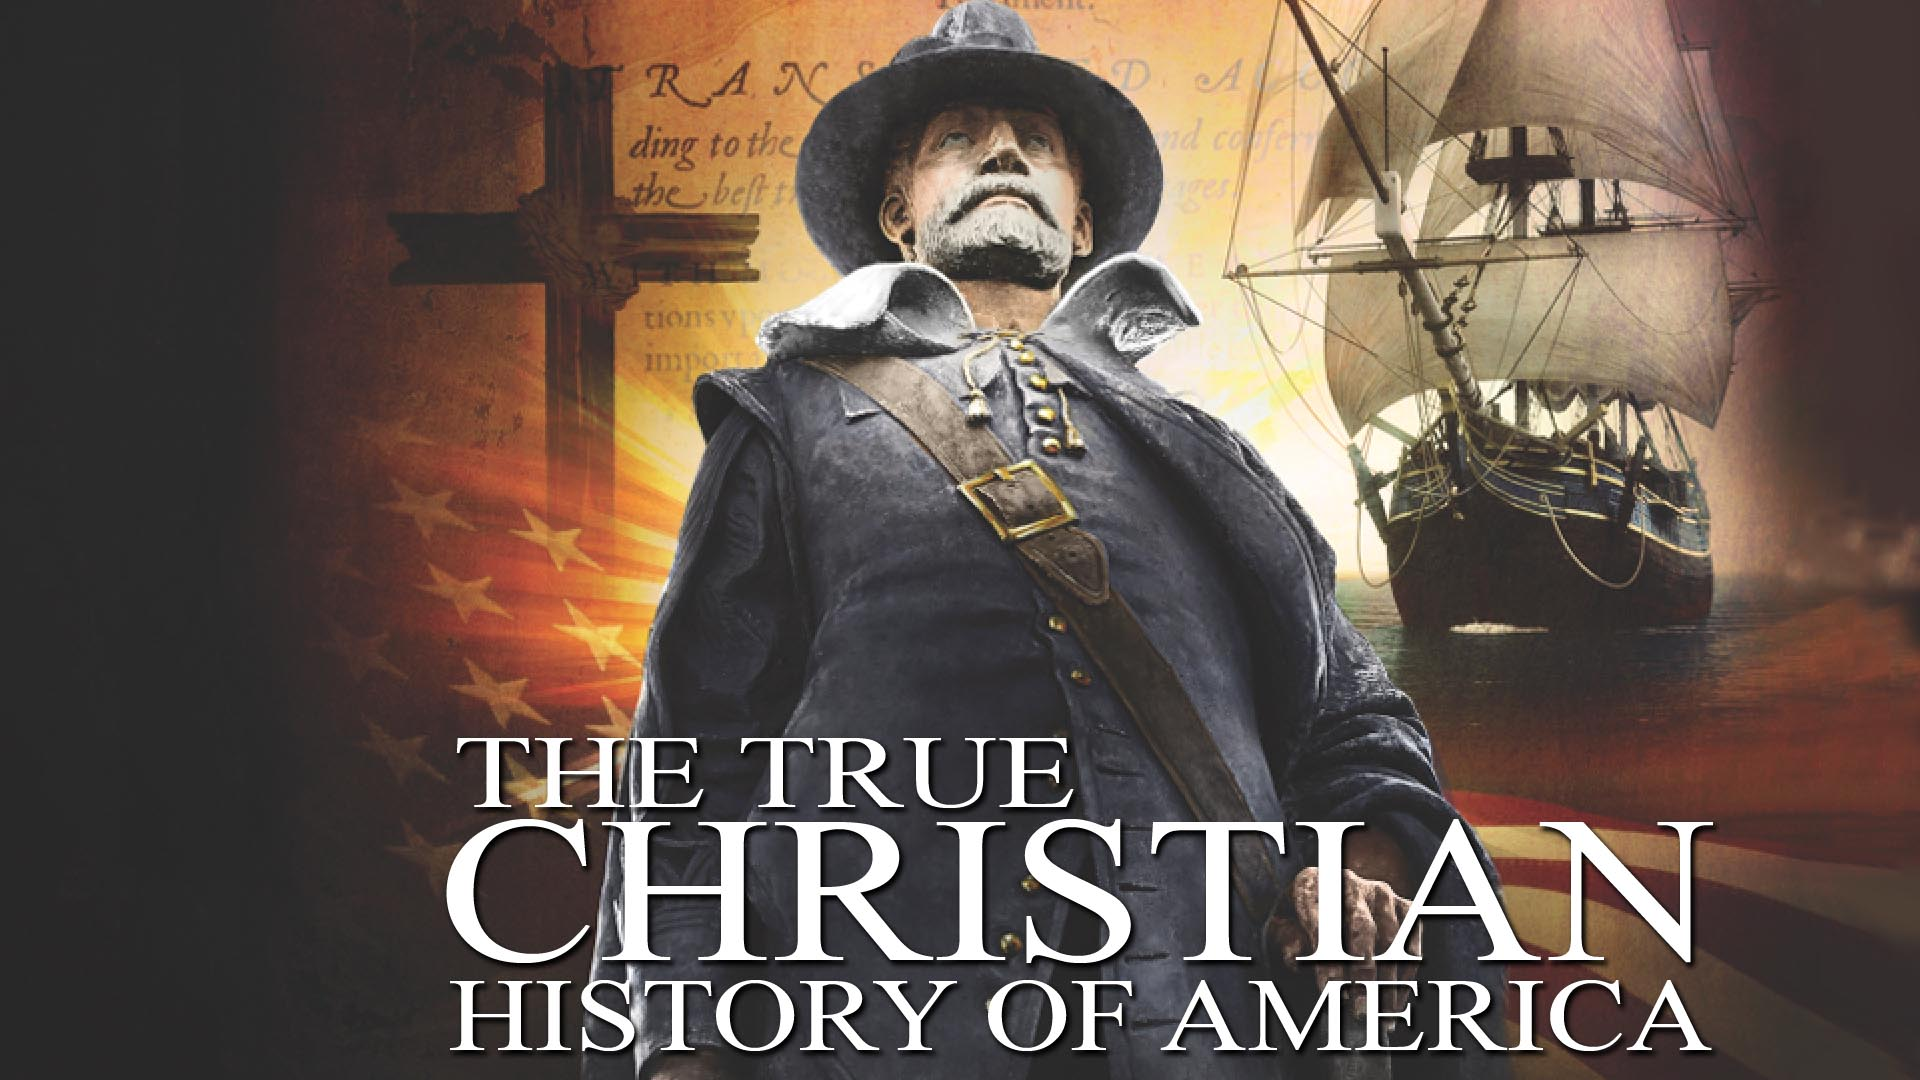 The True Christian History of America